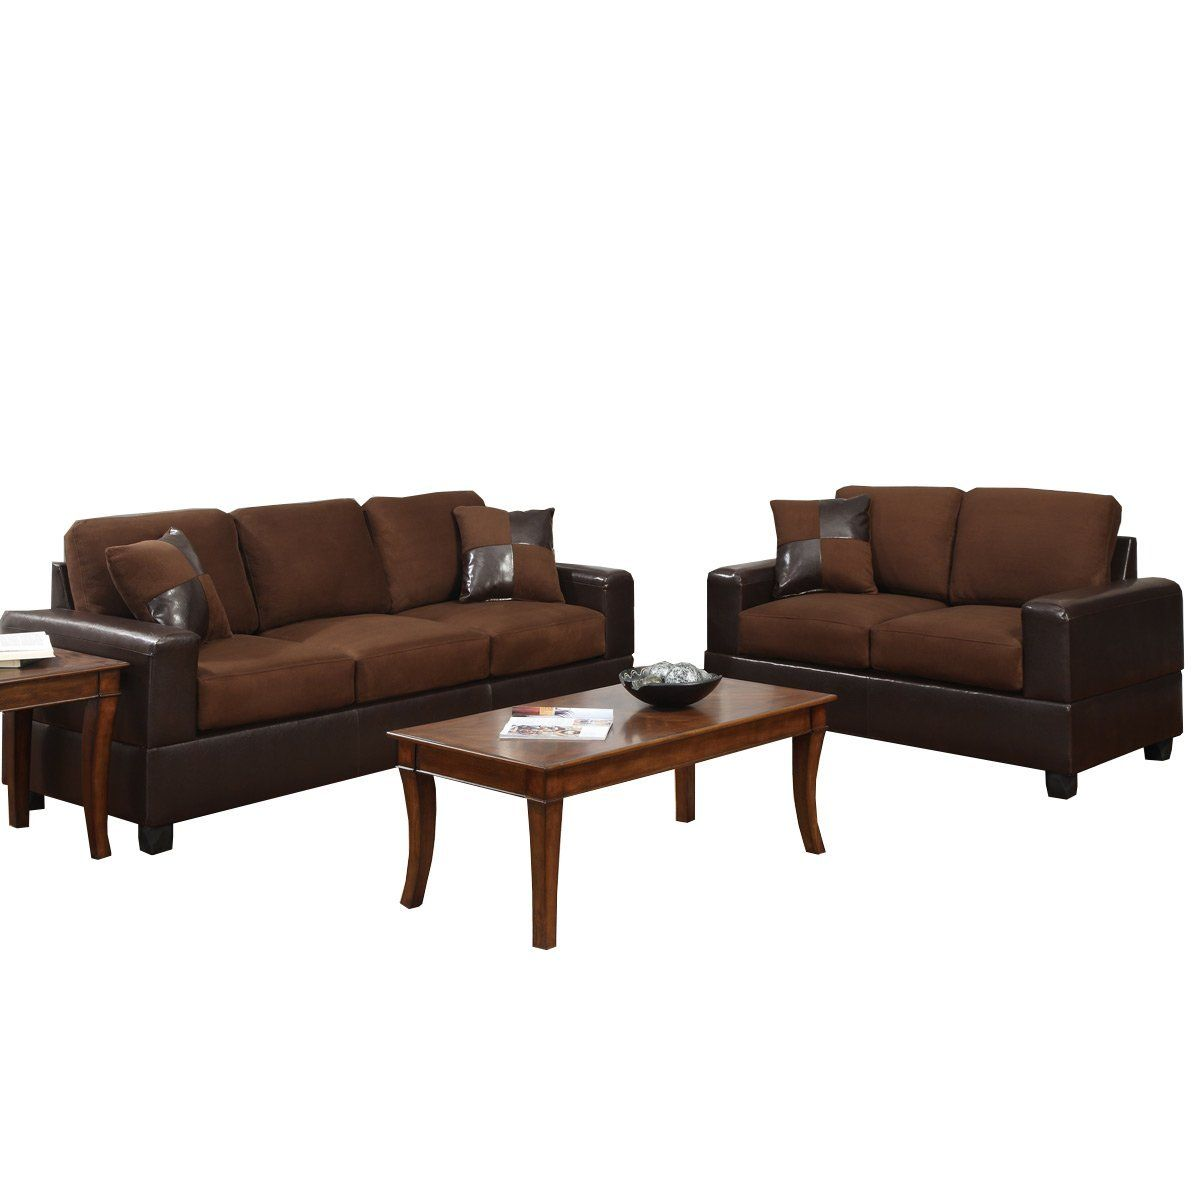 Best Seattle Chocolate Color Microfiber Sofa And Loveseat 2 400 x 300